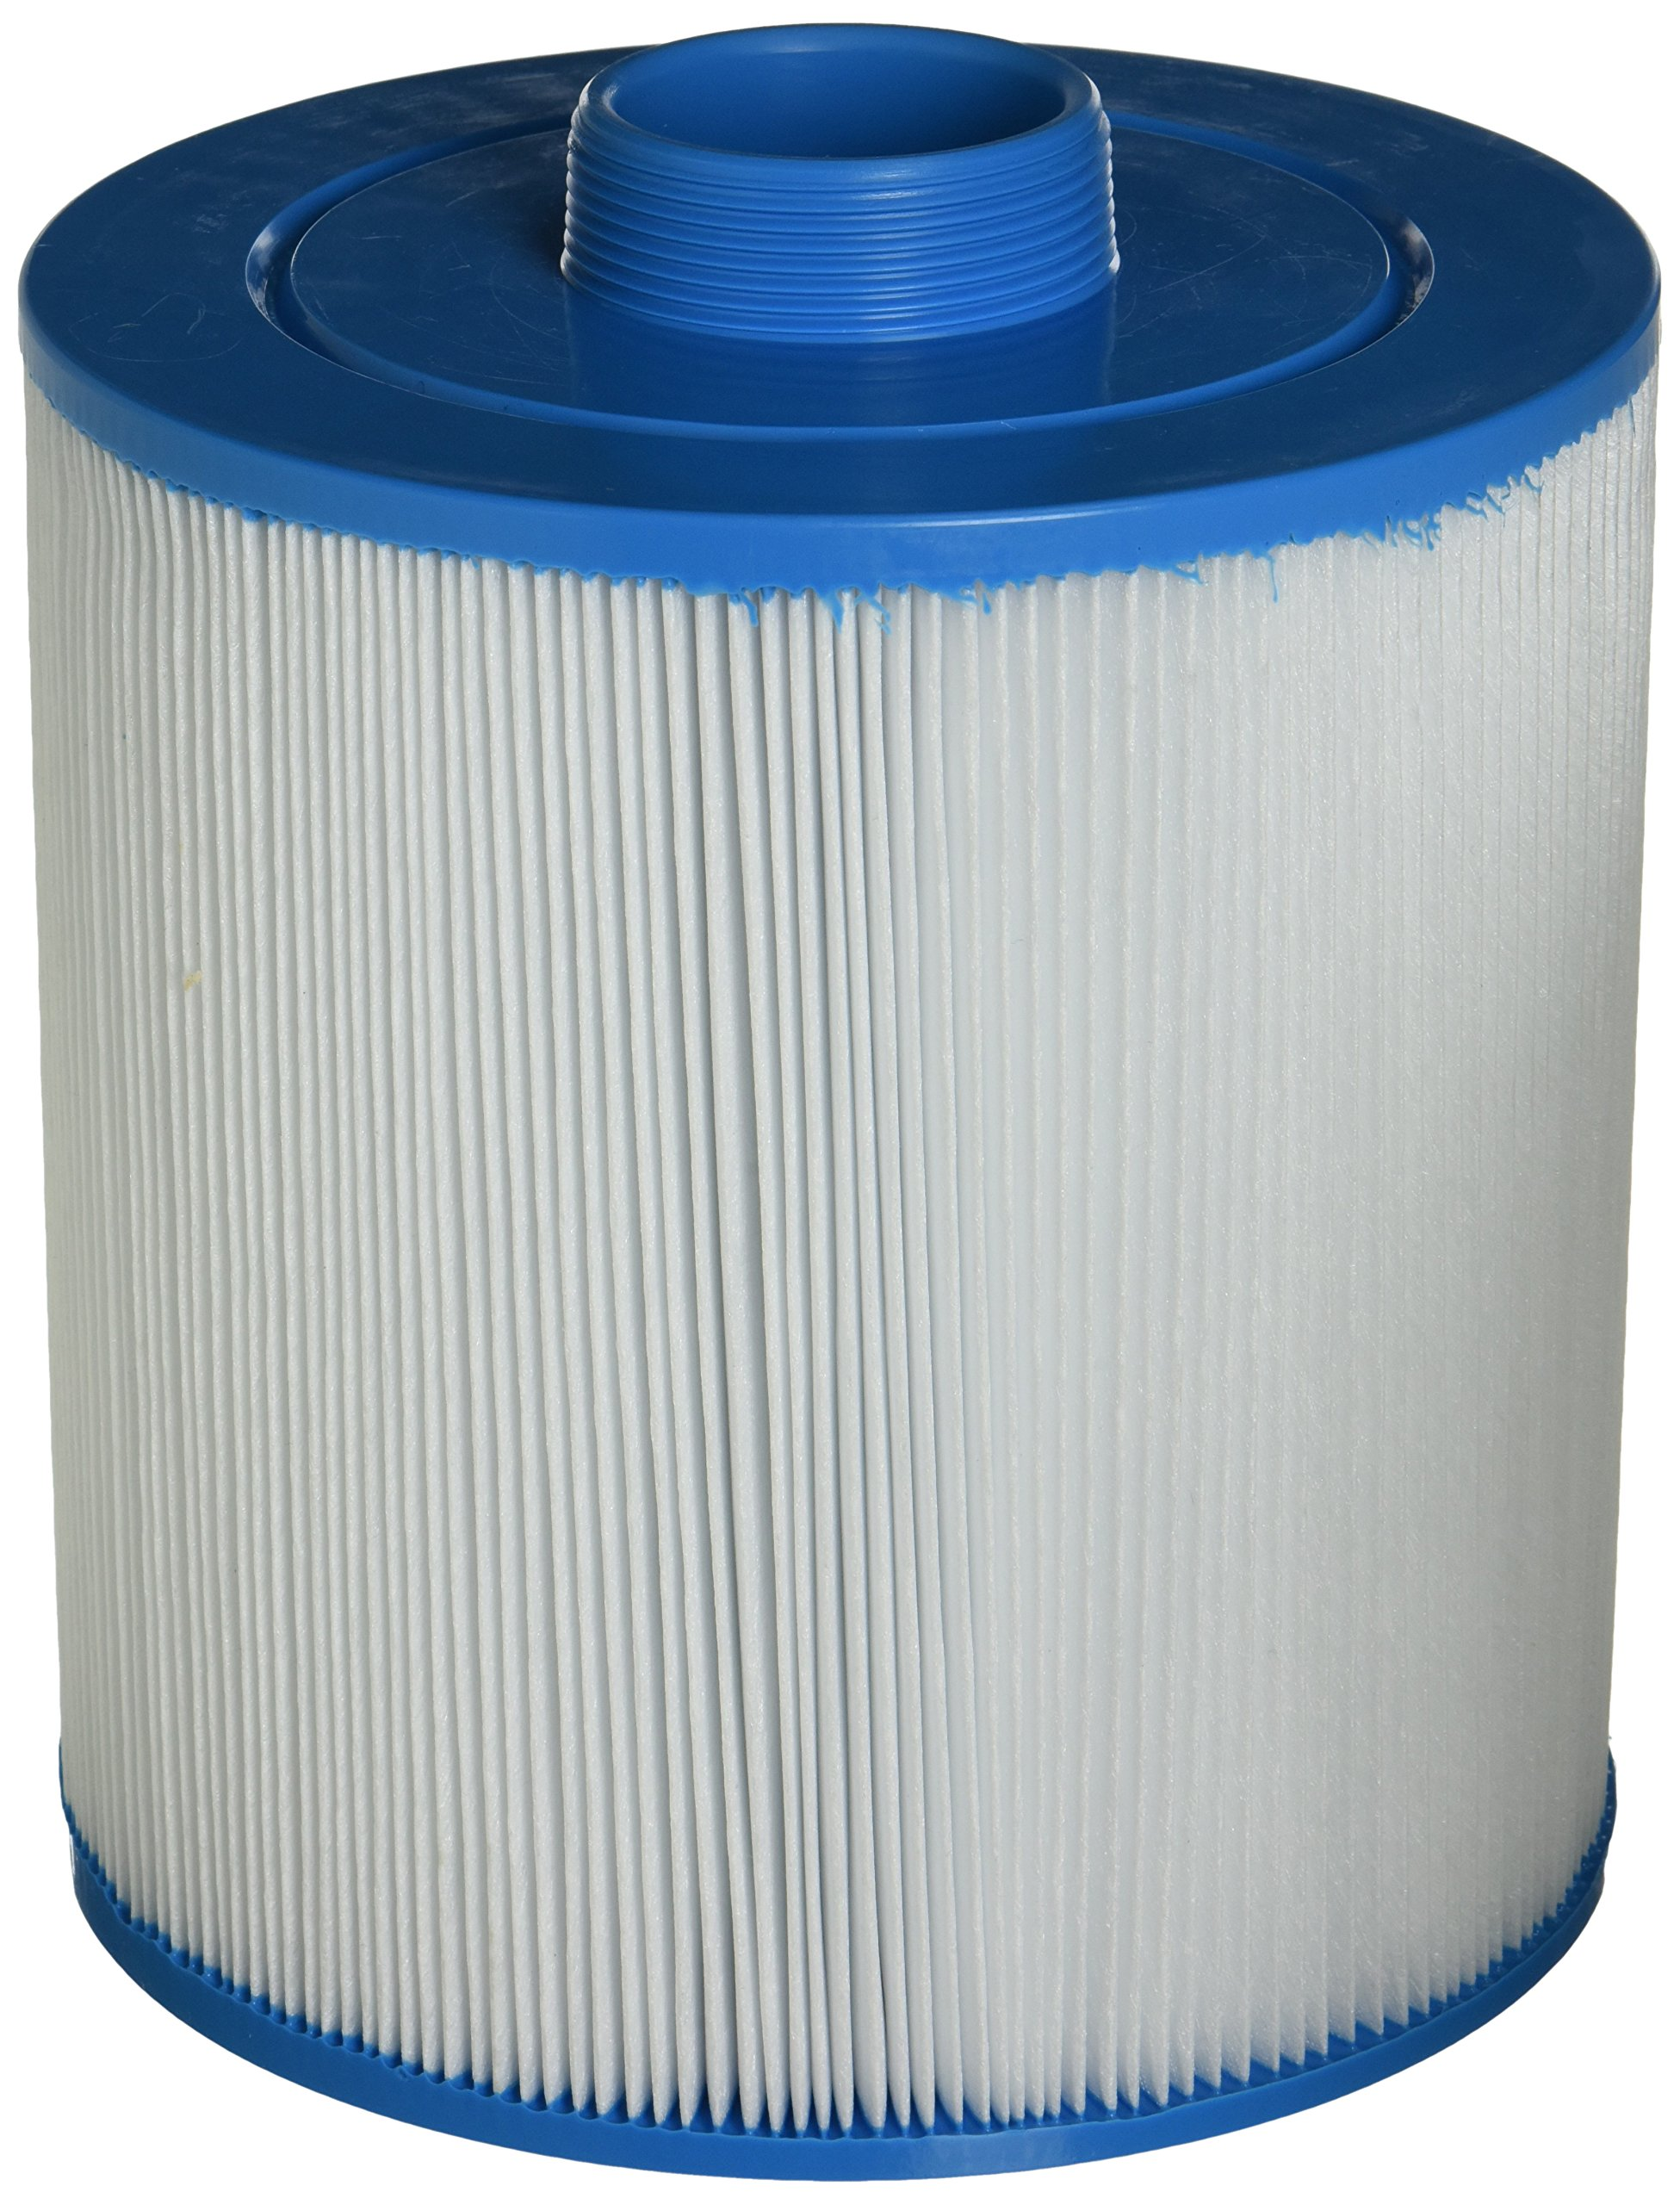 Filbur FC-0418 Antimicrobial Replacement Filter Cartridge for Master Pool and Spa Filters